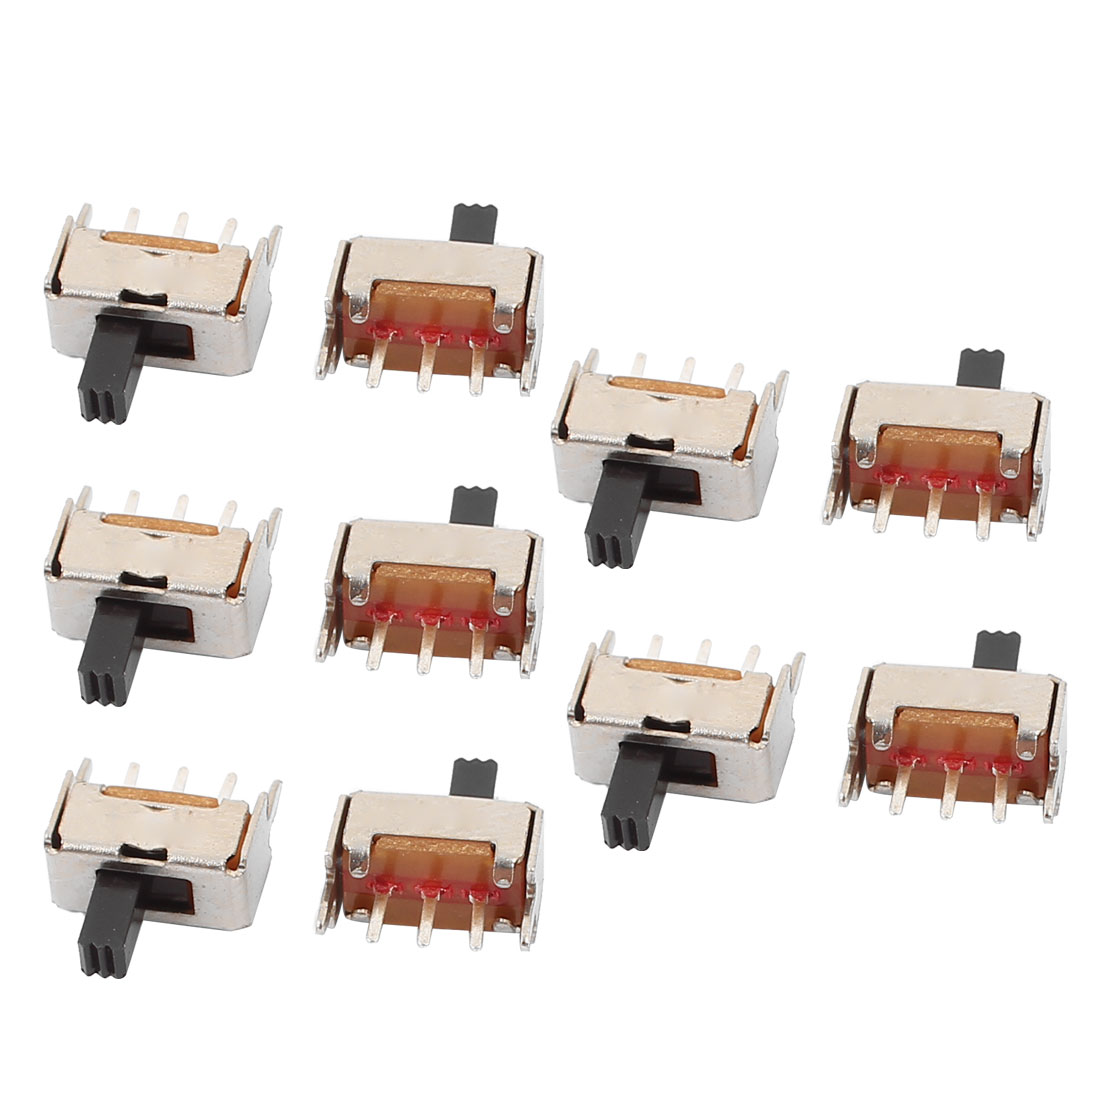 10Pcs DC50V 0.5A 2 Position 3P SPDT Mini Slide Switch Latching Toy Switch